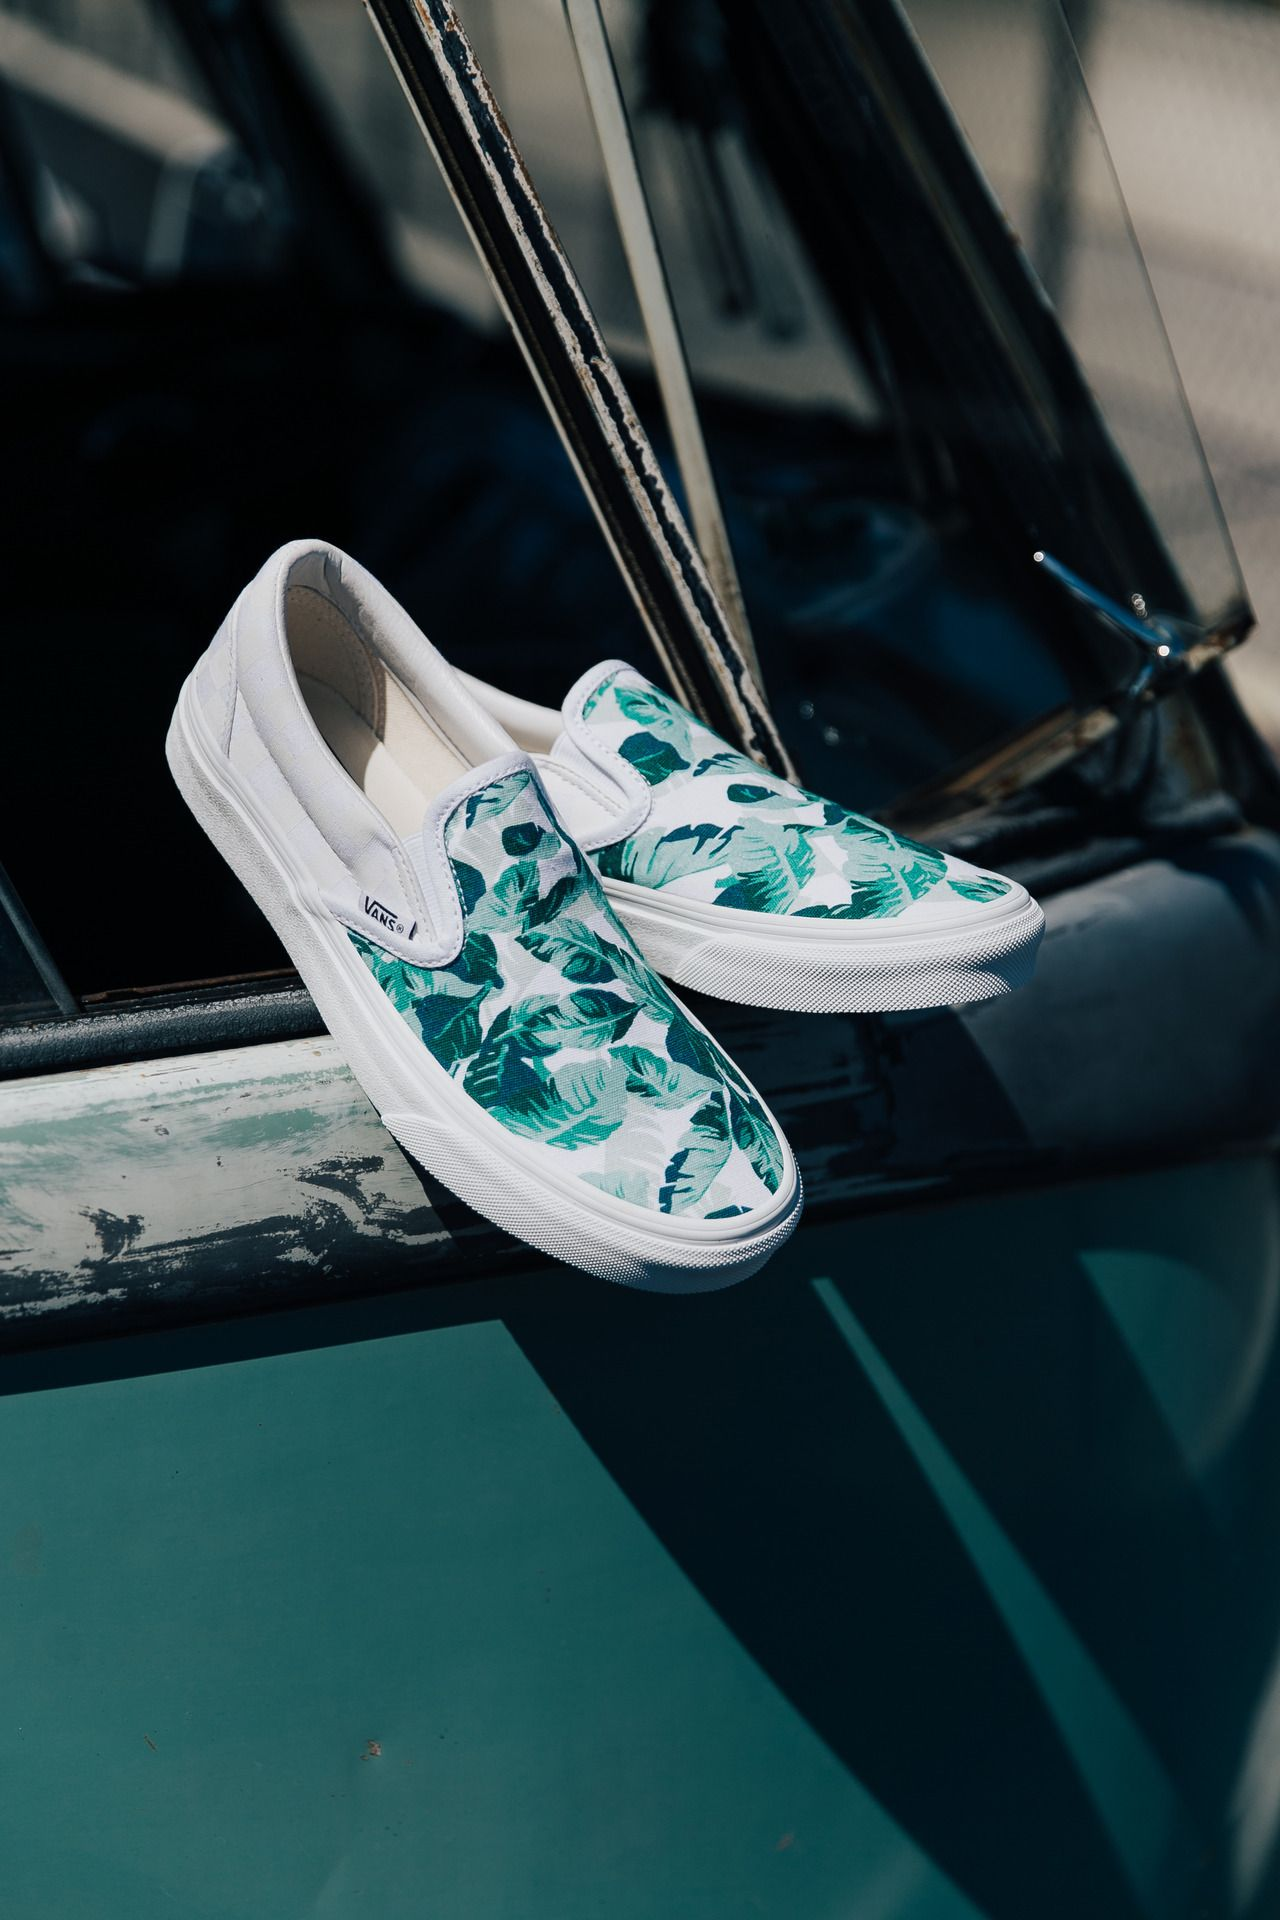 Leaf Me Alone Explore New Prints In The Vans Customs Shop At Vans